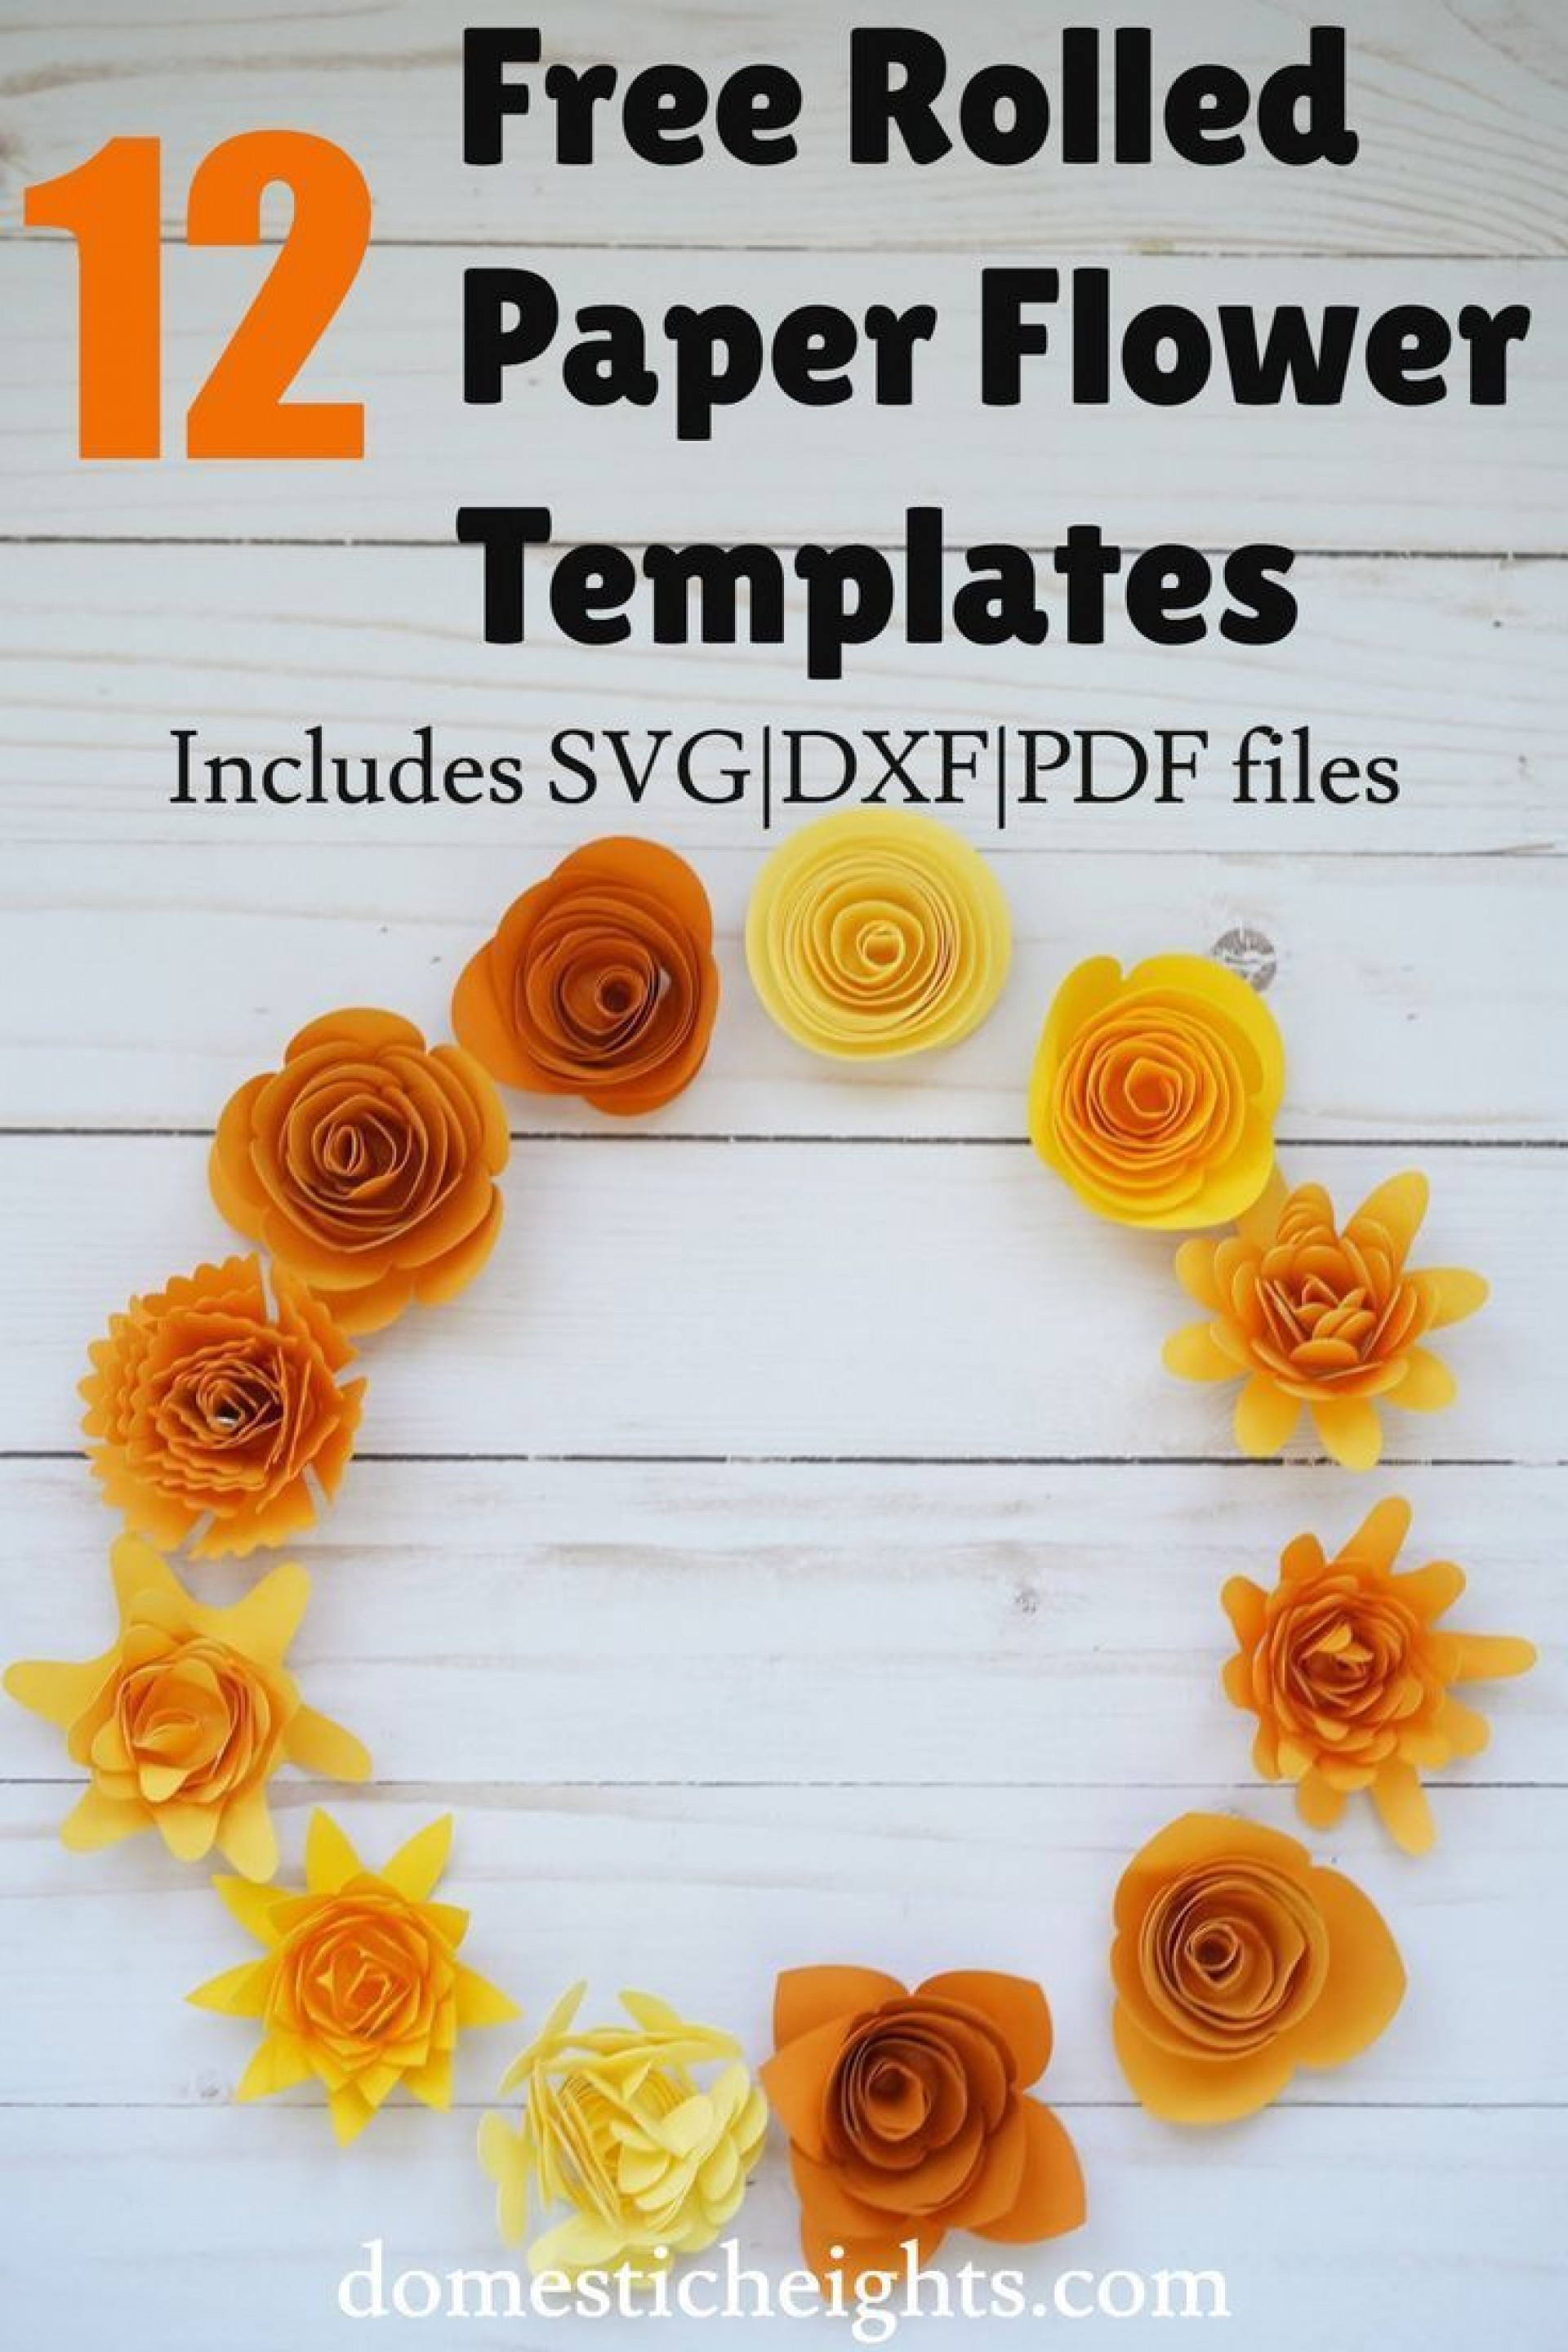 001 Impressive Free Rolled Paper Flower Template For Cricut Inspiration 1920